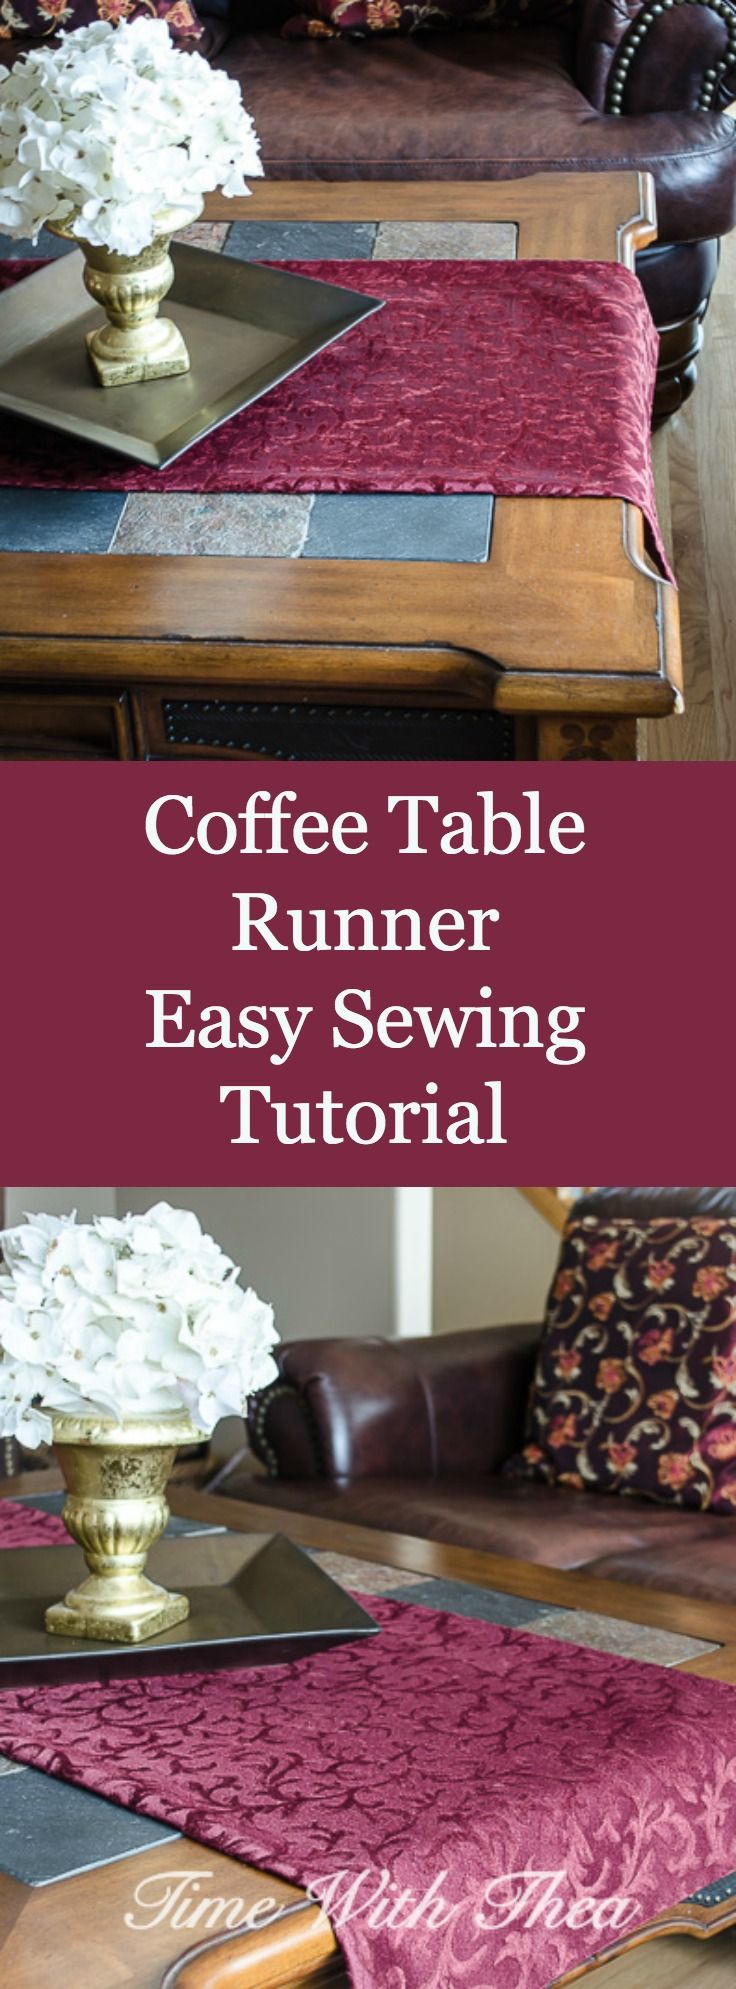 Coffee table runner easy sewing tutorial runners table runners coffee table runner easy sewing tutorial geotapseo Choice Image